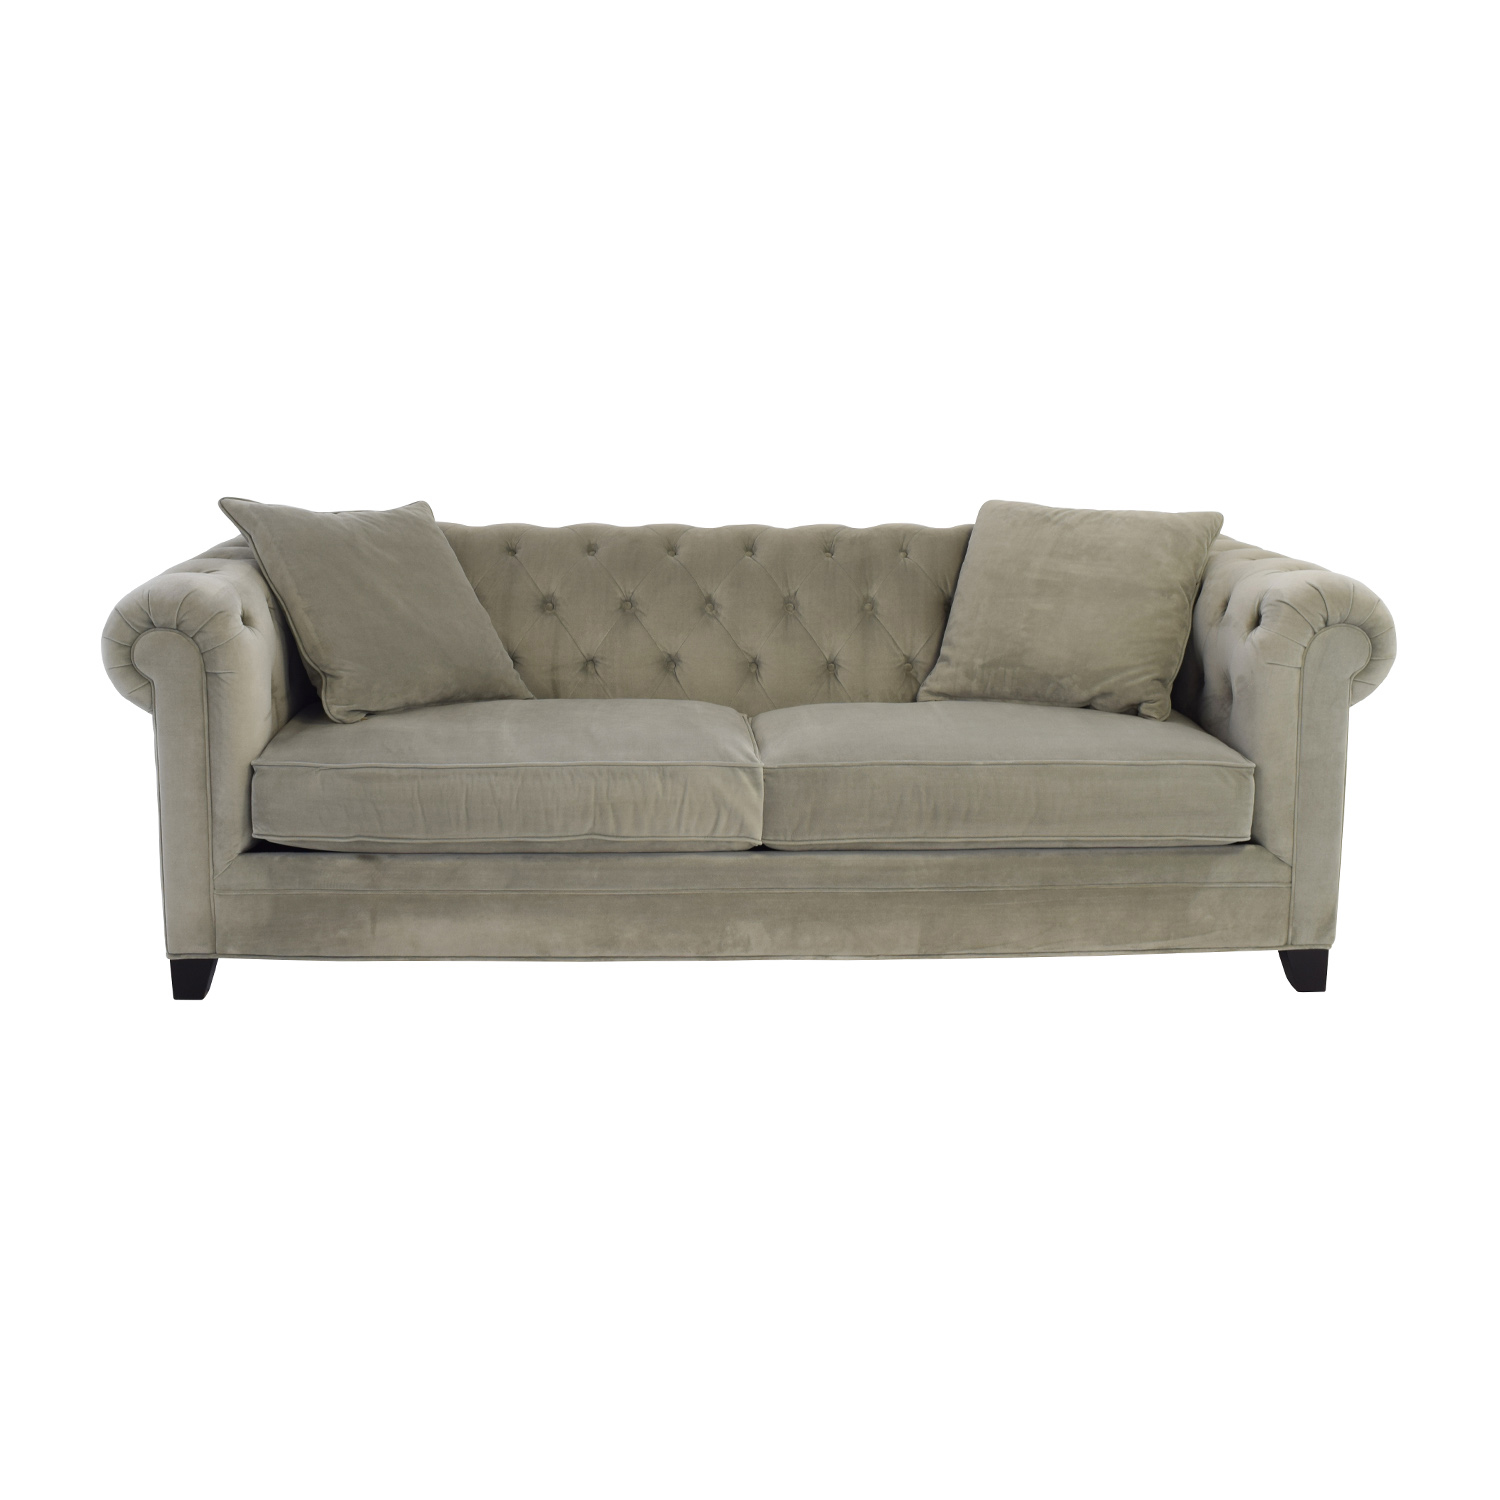 Macyu0027s Martha Stewart Collection Martha Stewart Saybridge Grey Sofa For ...